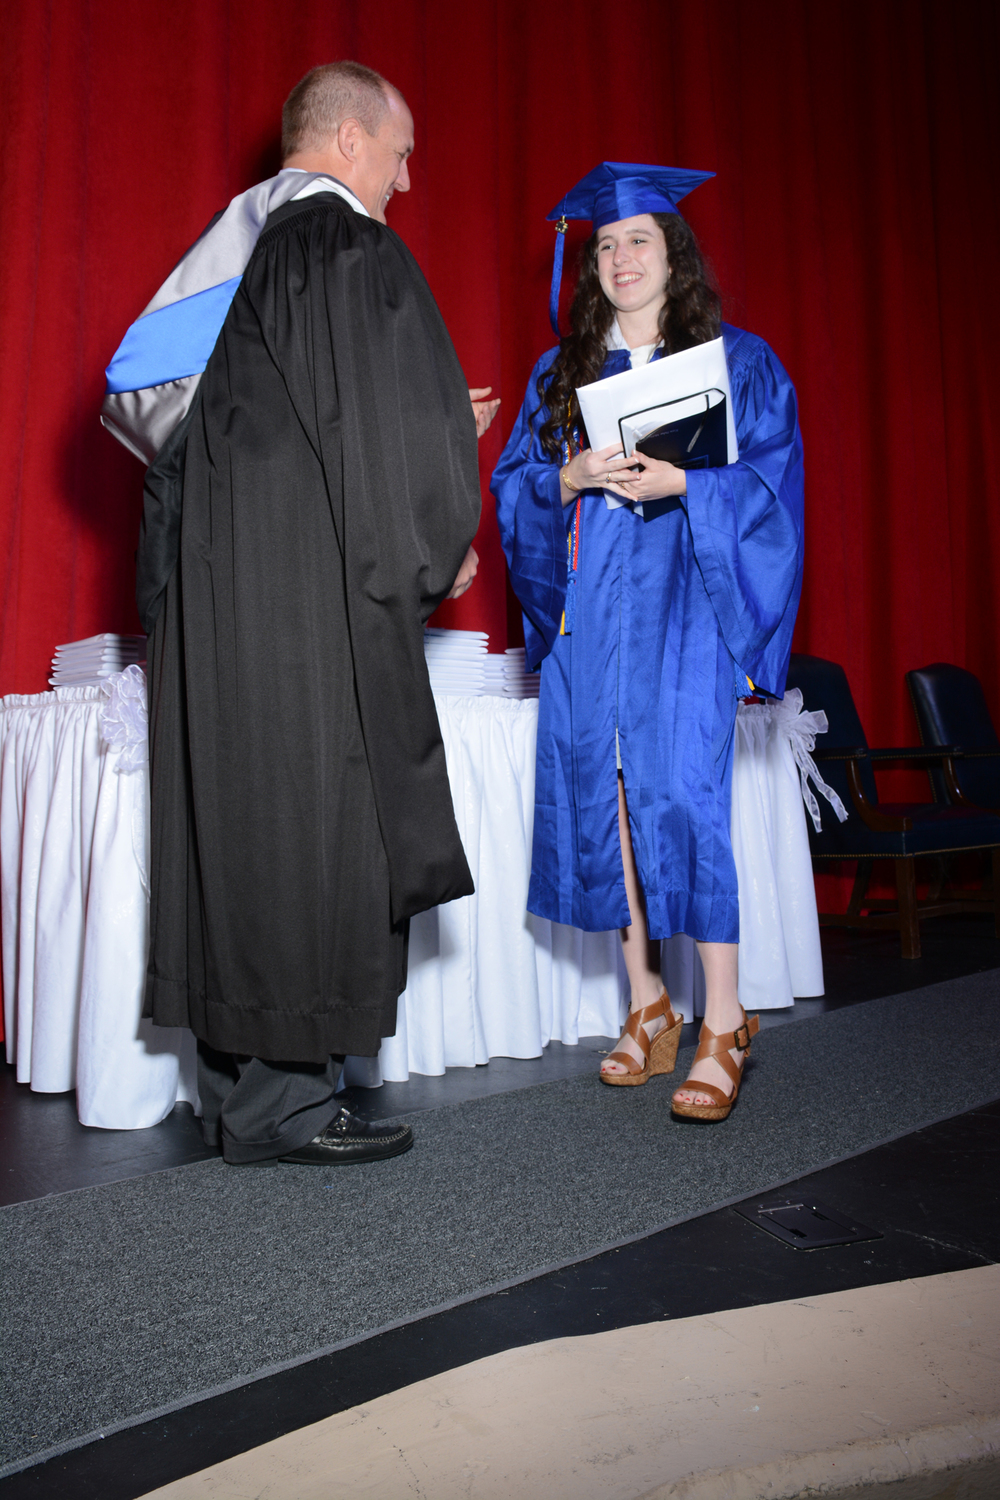 May16 GraduationPhotos48.jpg